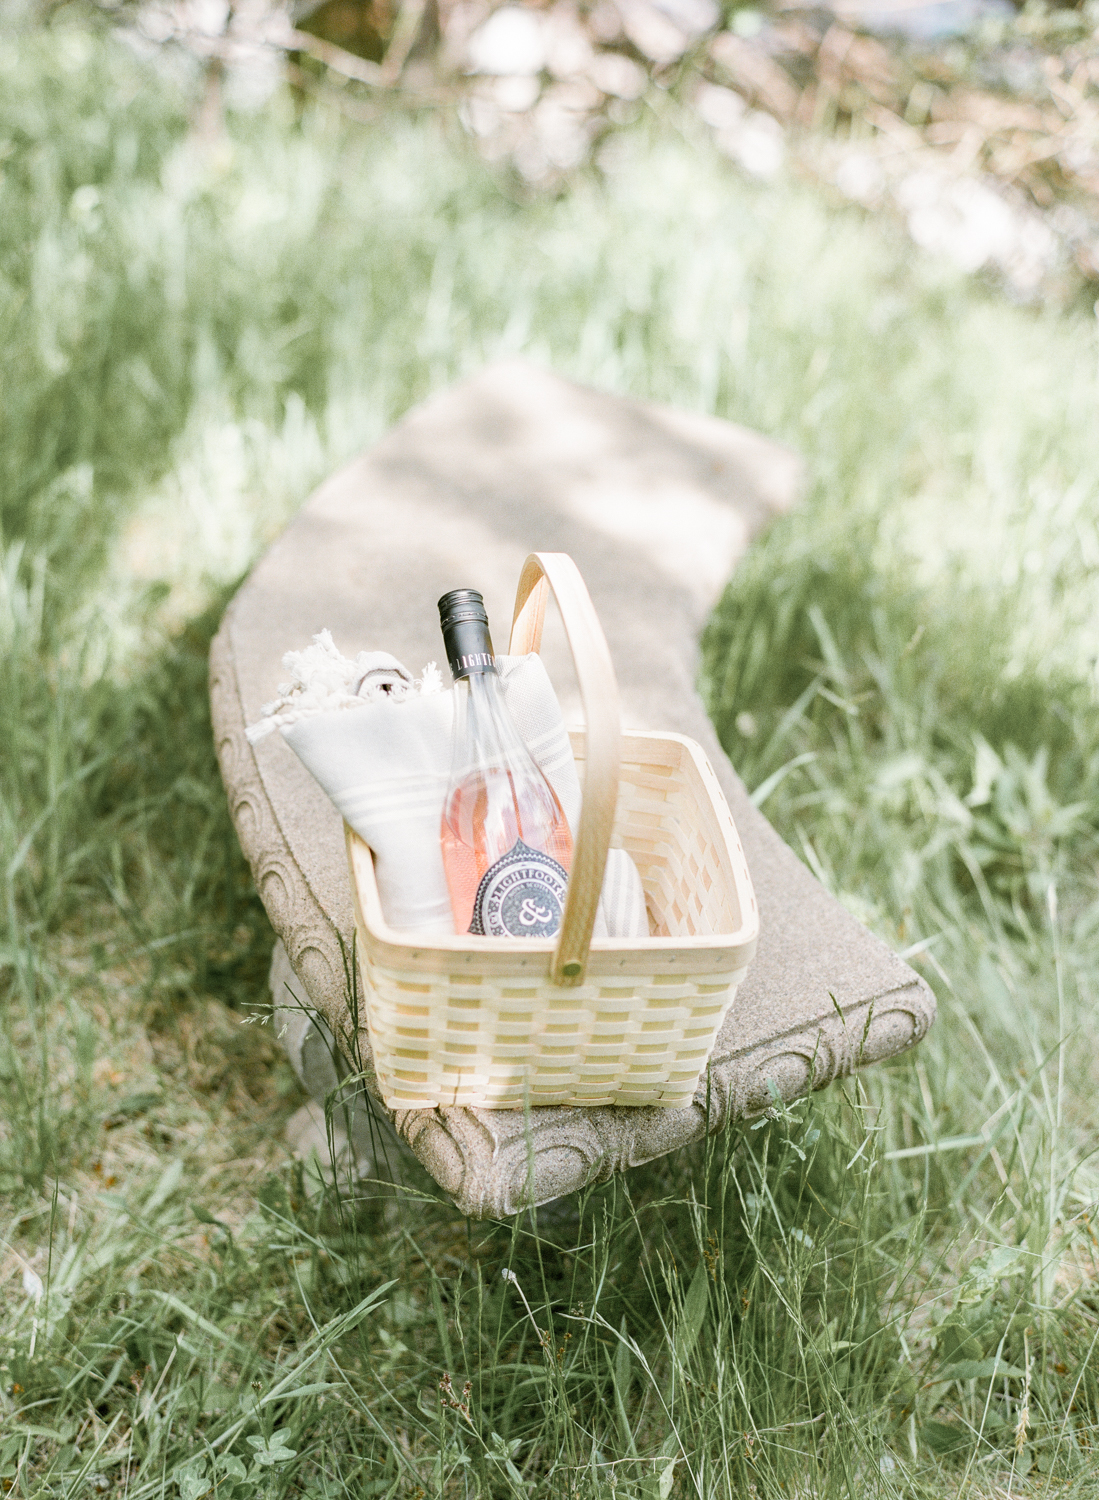 Jacqueline Anne Photography Captured on Film, A cream sunhat on a sunny bench, with a bottle of Lightfoot and Wolfville Wine